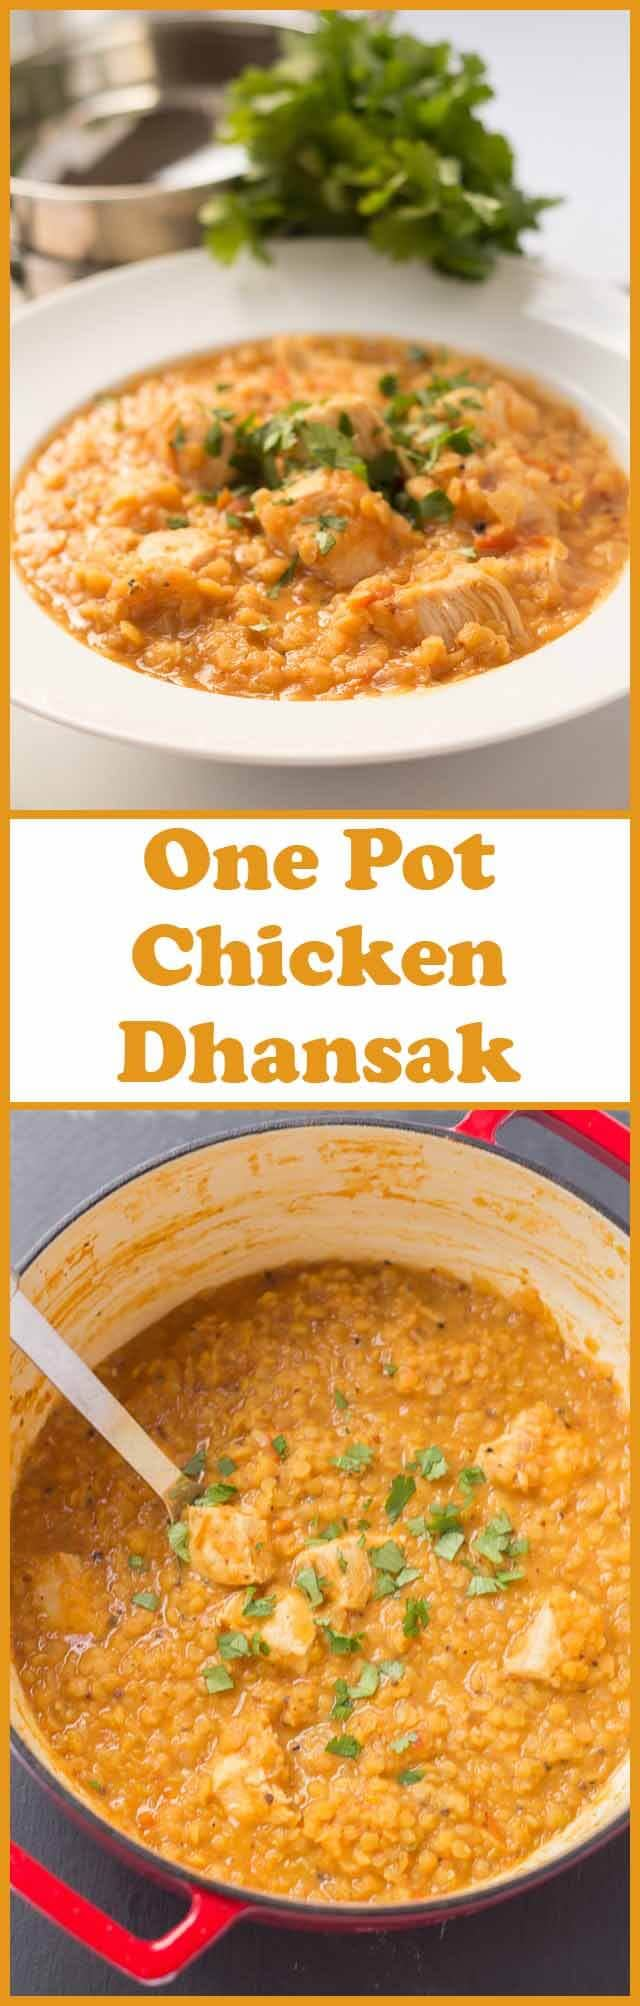 One pot chicken dhansak is a delicious home made lentil curry infused with spices that is so easy to make. Filling and providing a huge amount of your daily protein requirement it also comes in at only 437 calories too!